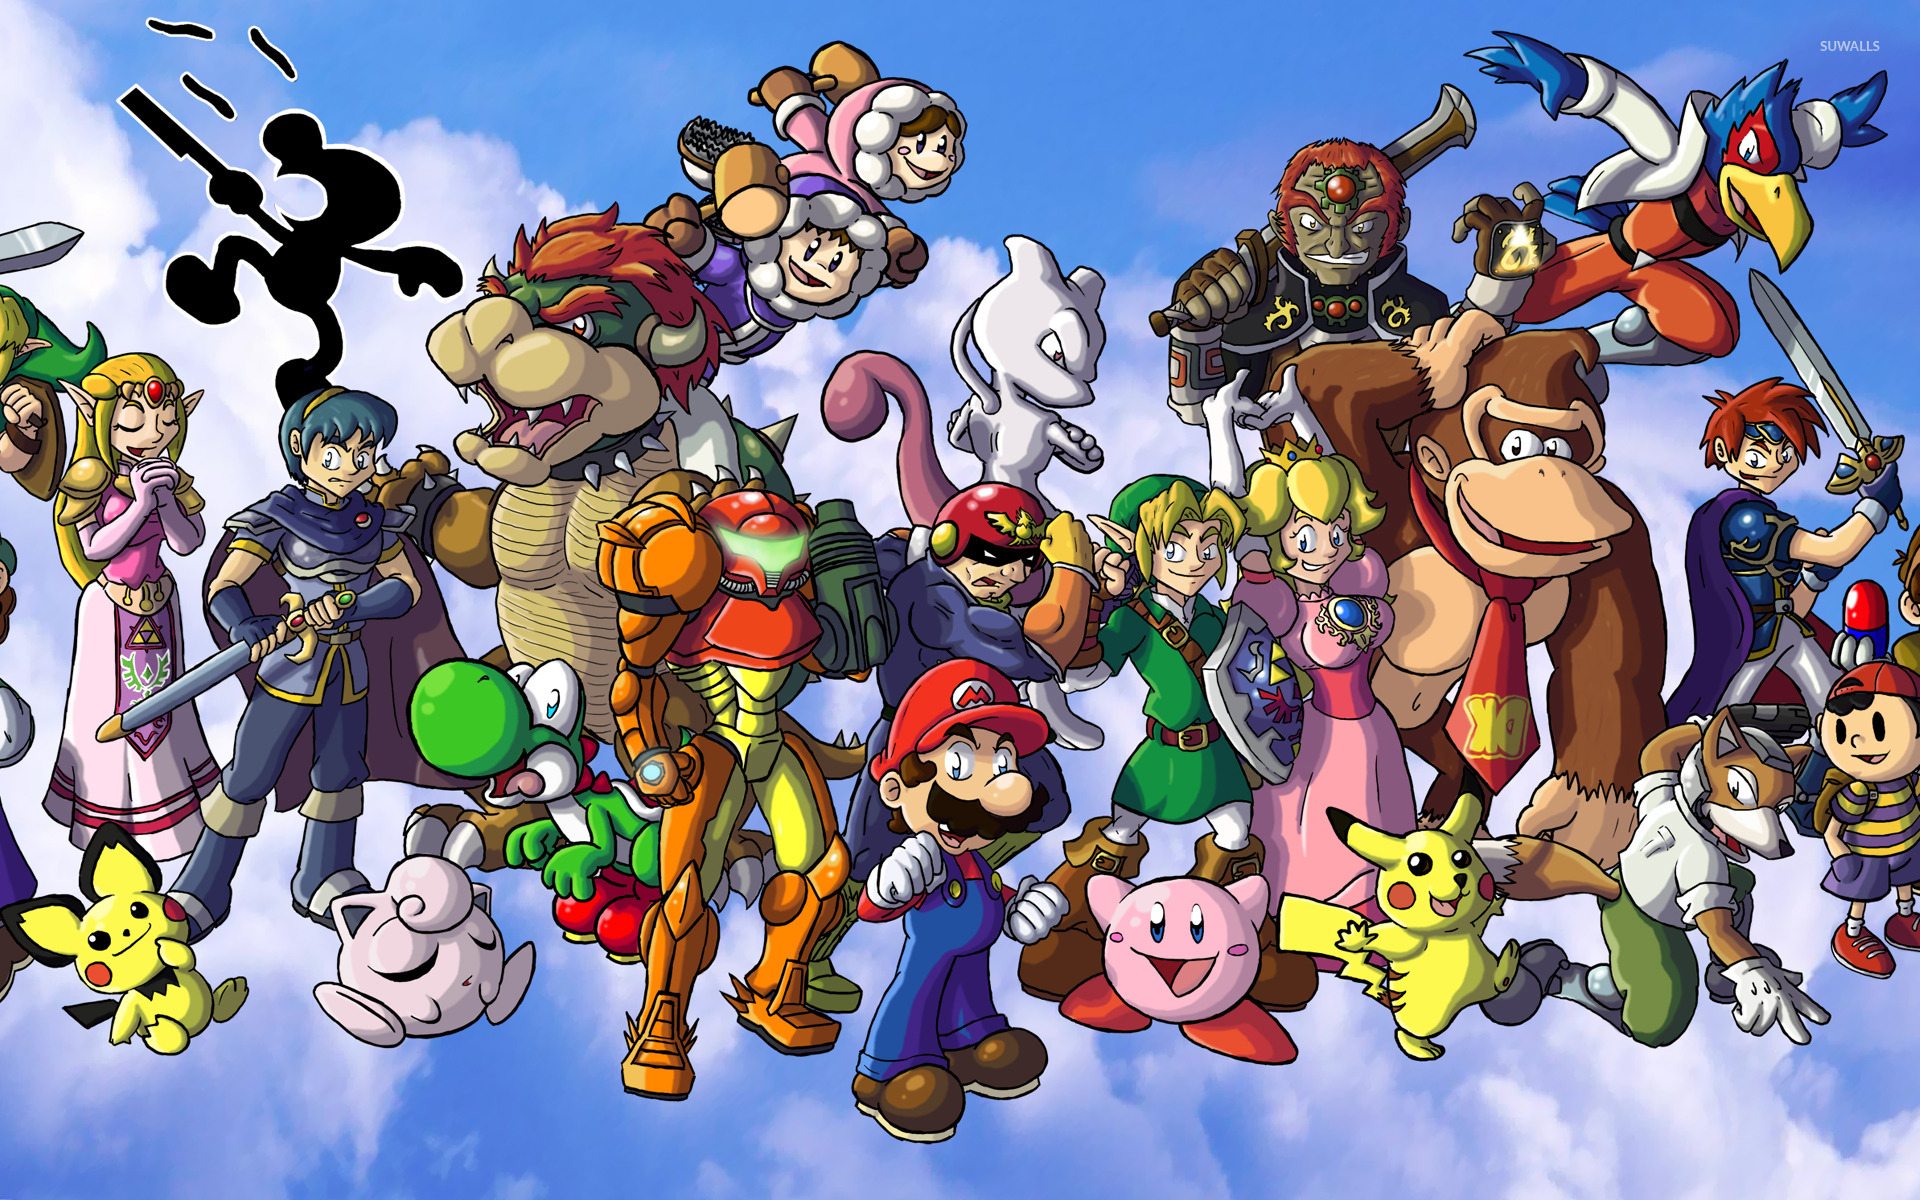 Free Download Super Smash Bros Wallpaper 1026569 1920x1200 For